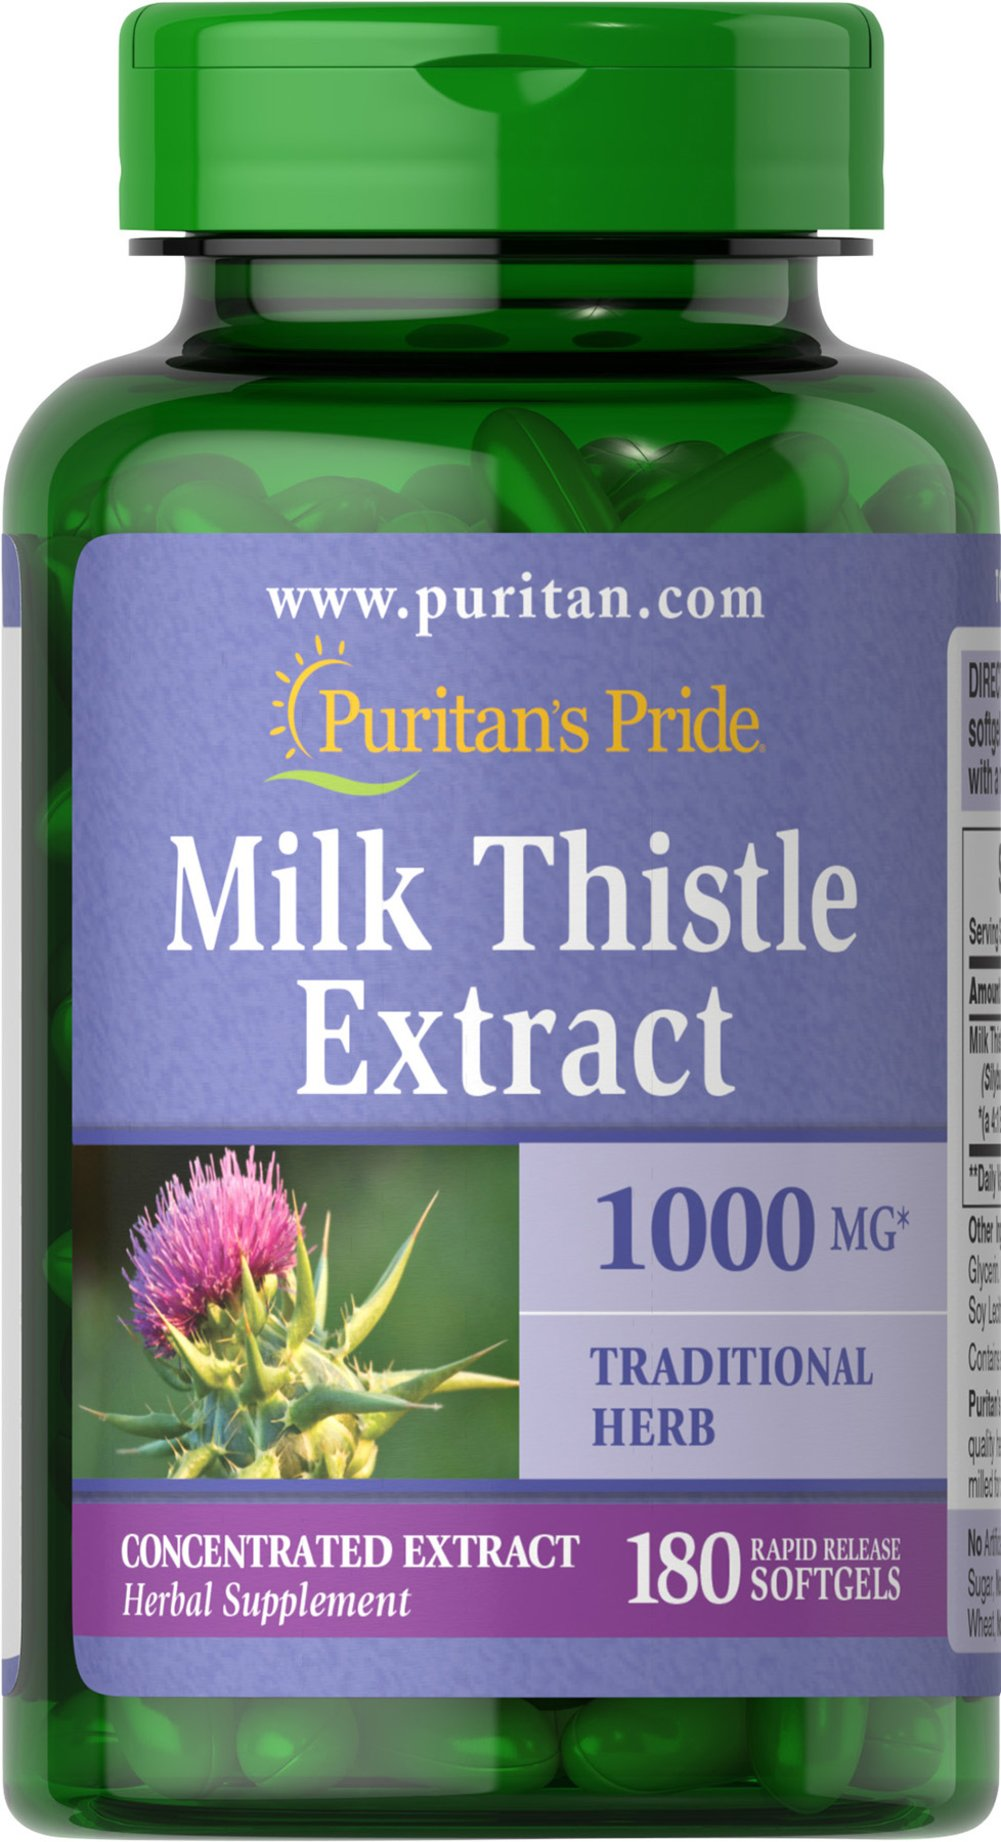 Milk Thistle 4:1 Extract 1000 mg (Silymarin) <p>Milk Thistle, derived from a purple flower, has been used in Greek practices for thousands of years.</p><p>The exceptional benefits of Milk Thistle are due to its antioxidant properties, which help to optimize health and well being.**  Milk Thistle helps maintain healthy liver function by supporting the structure of the outer cell membrane of liver cells.**</p><p>Adults can take one softgel once or twice daily